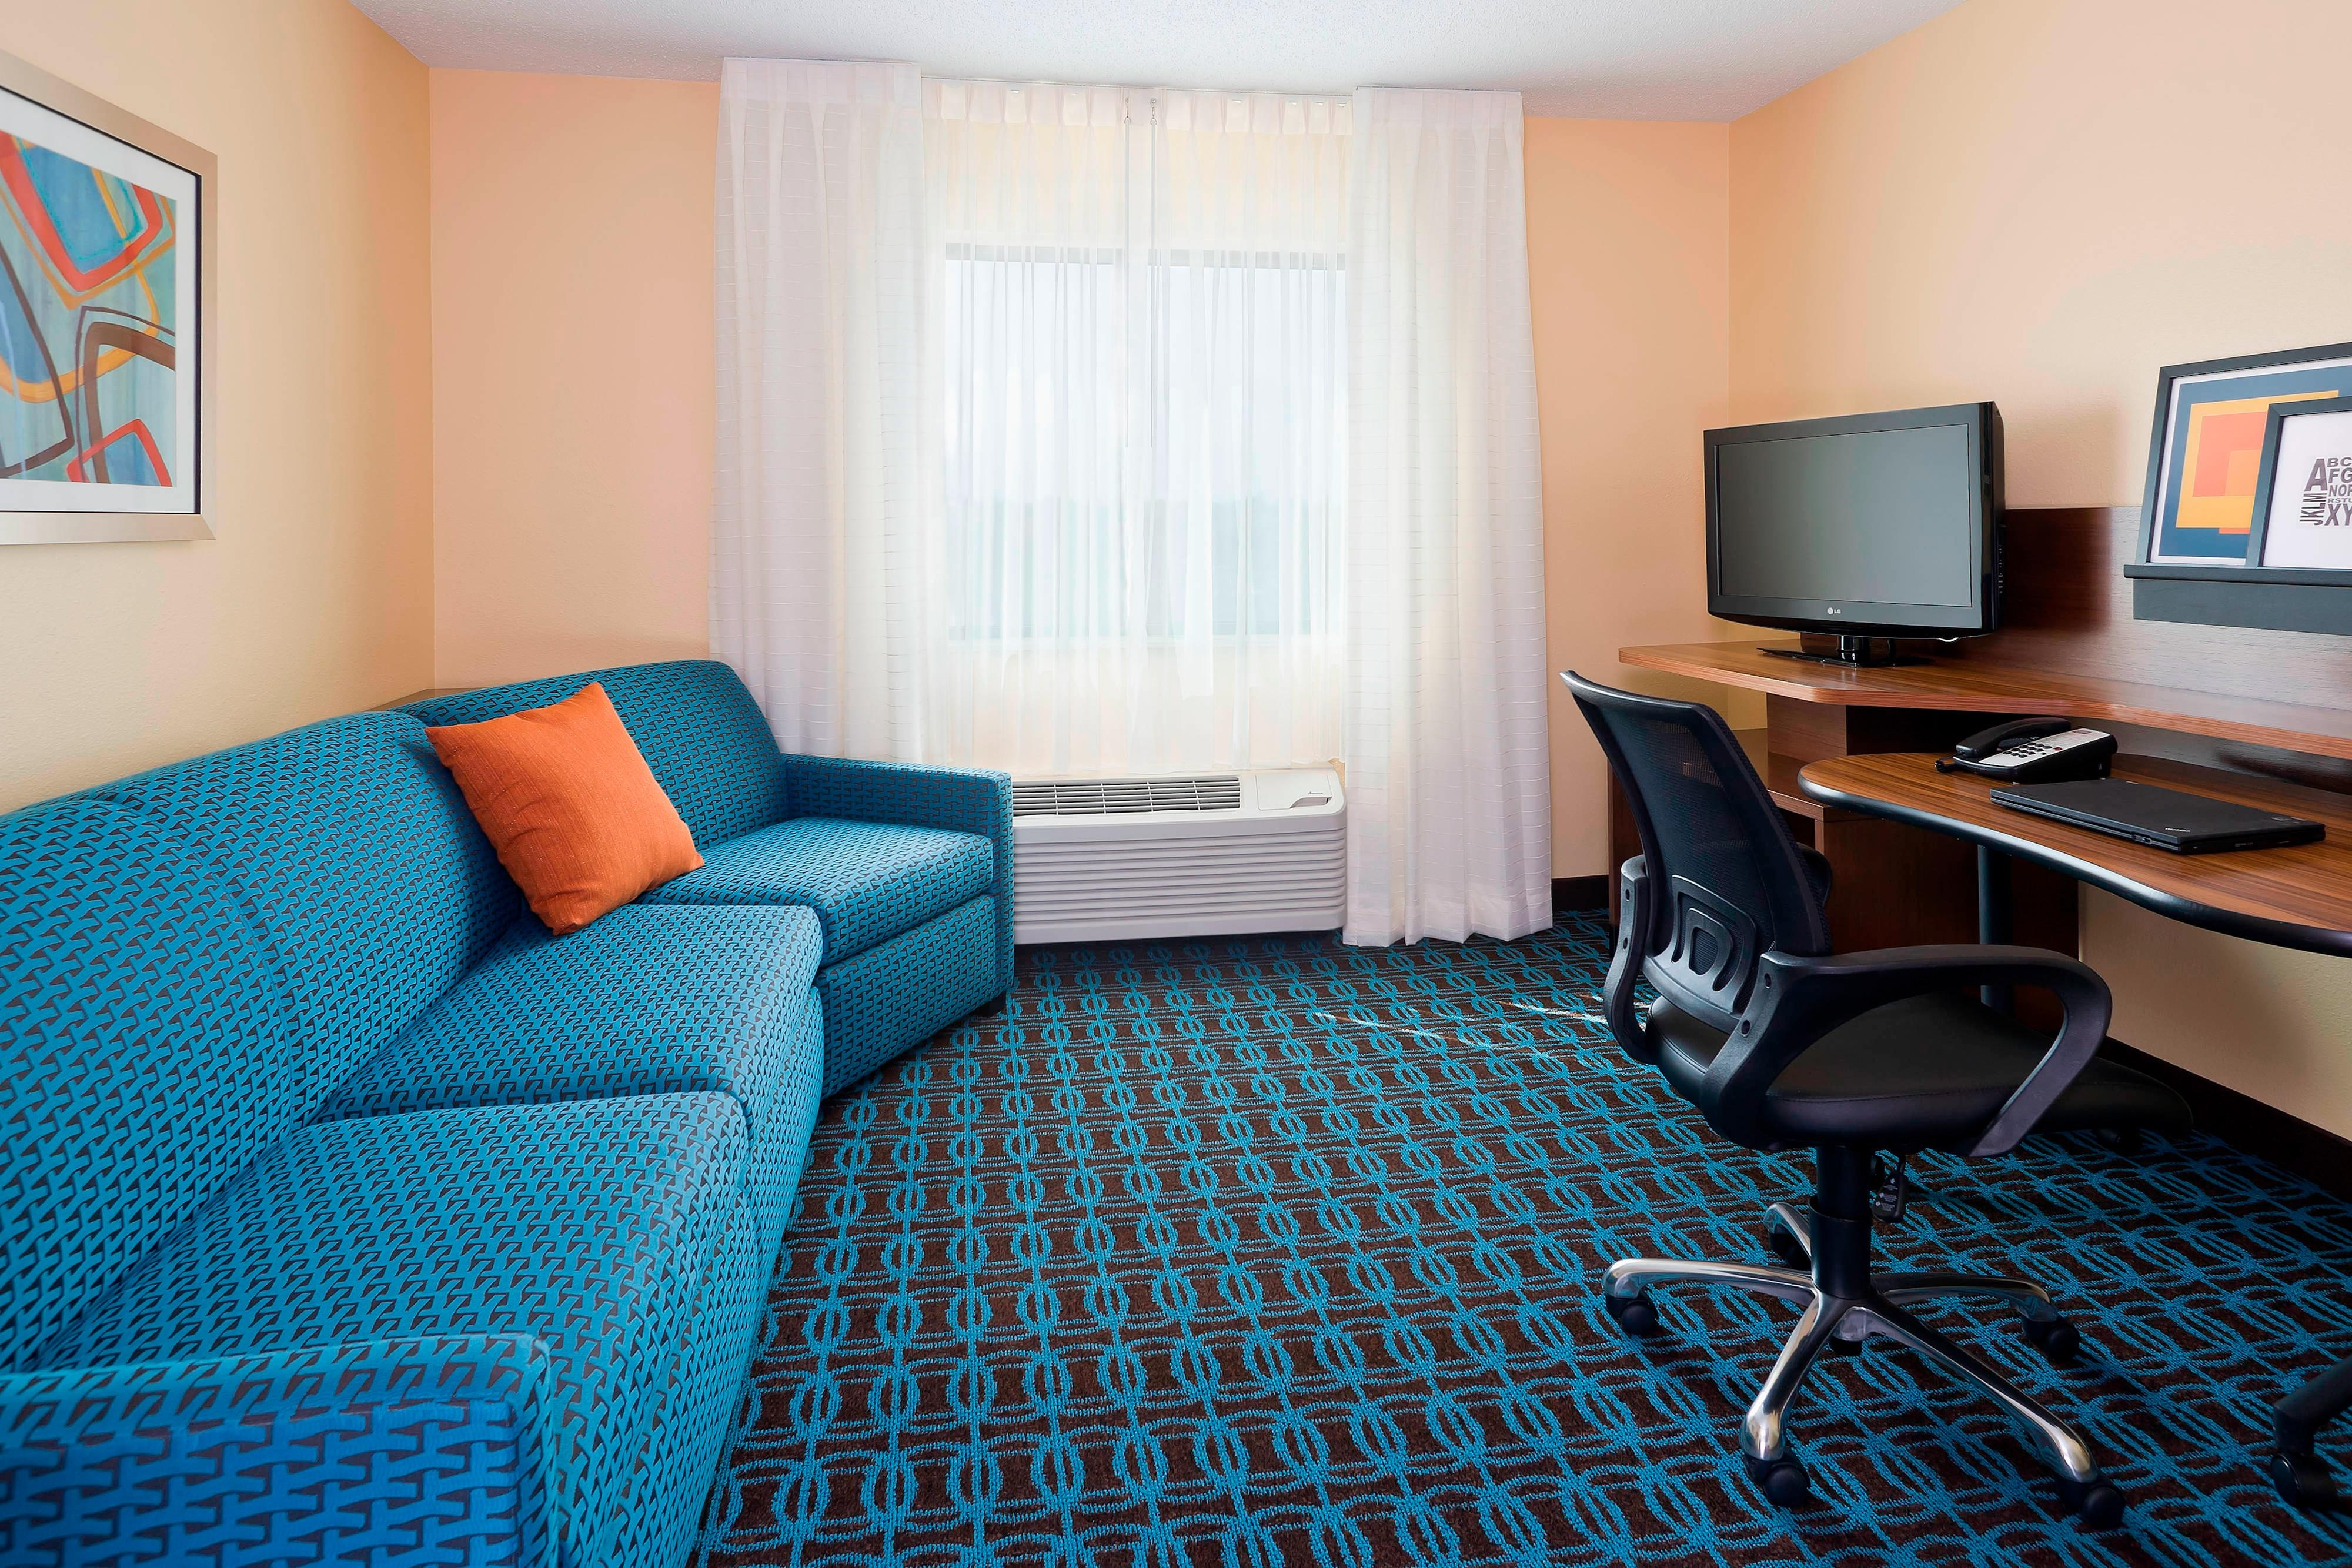 Hotel Rooms In Bryan Texas